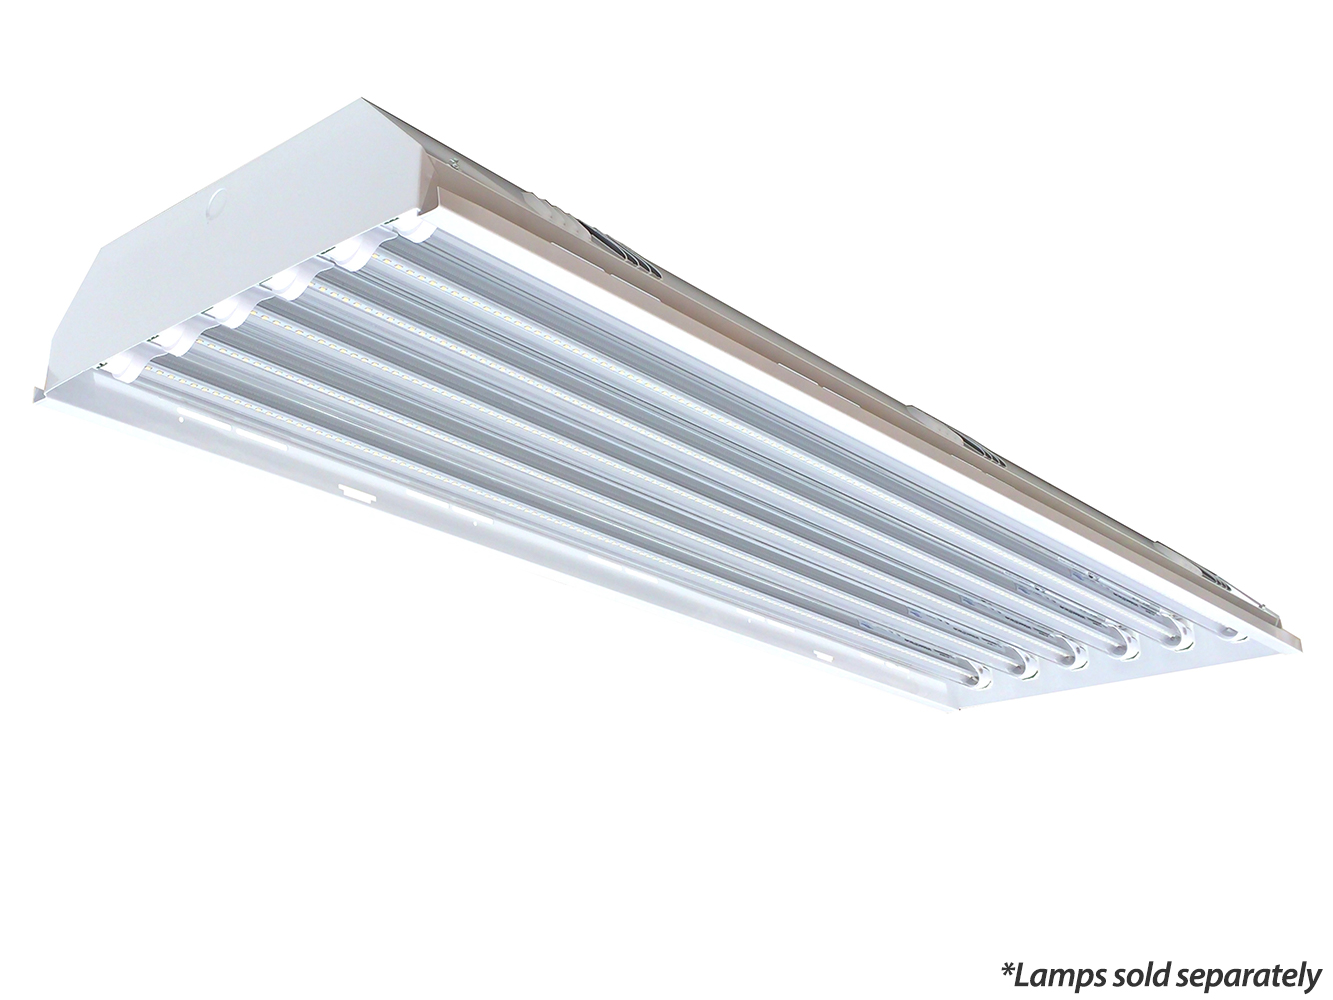 Led T8 Triton Low Bay 4ft 6 Lamp Tube Ready Fixture Fixture Only